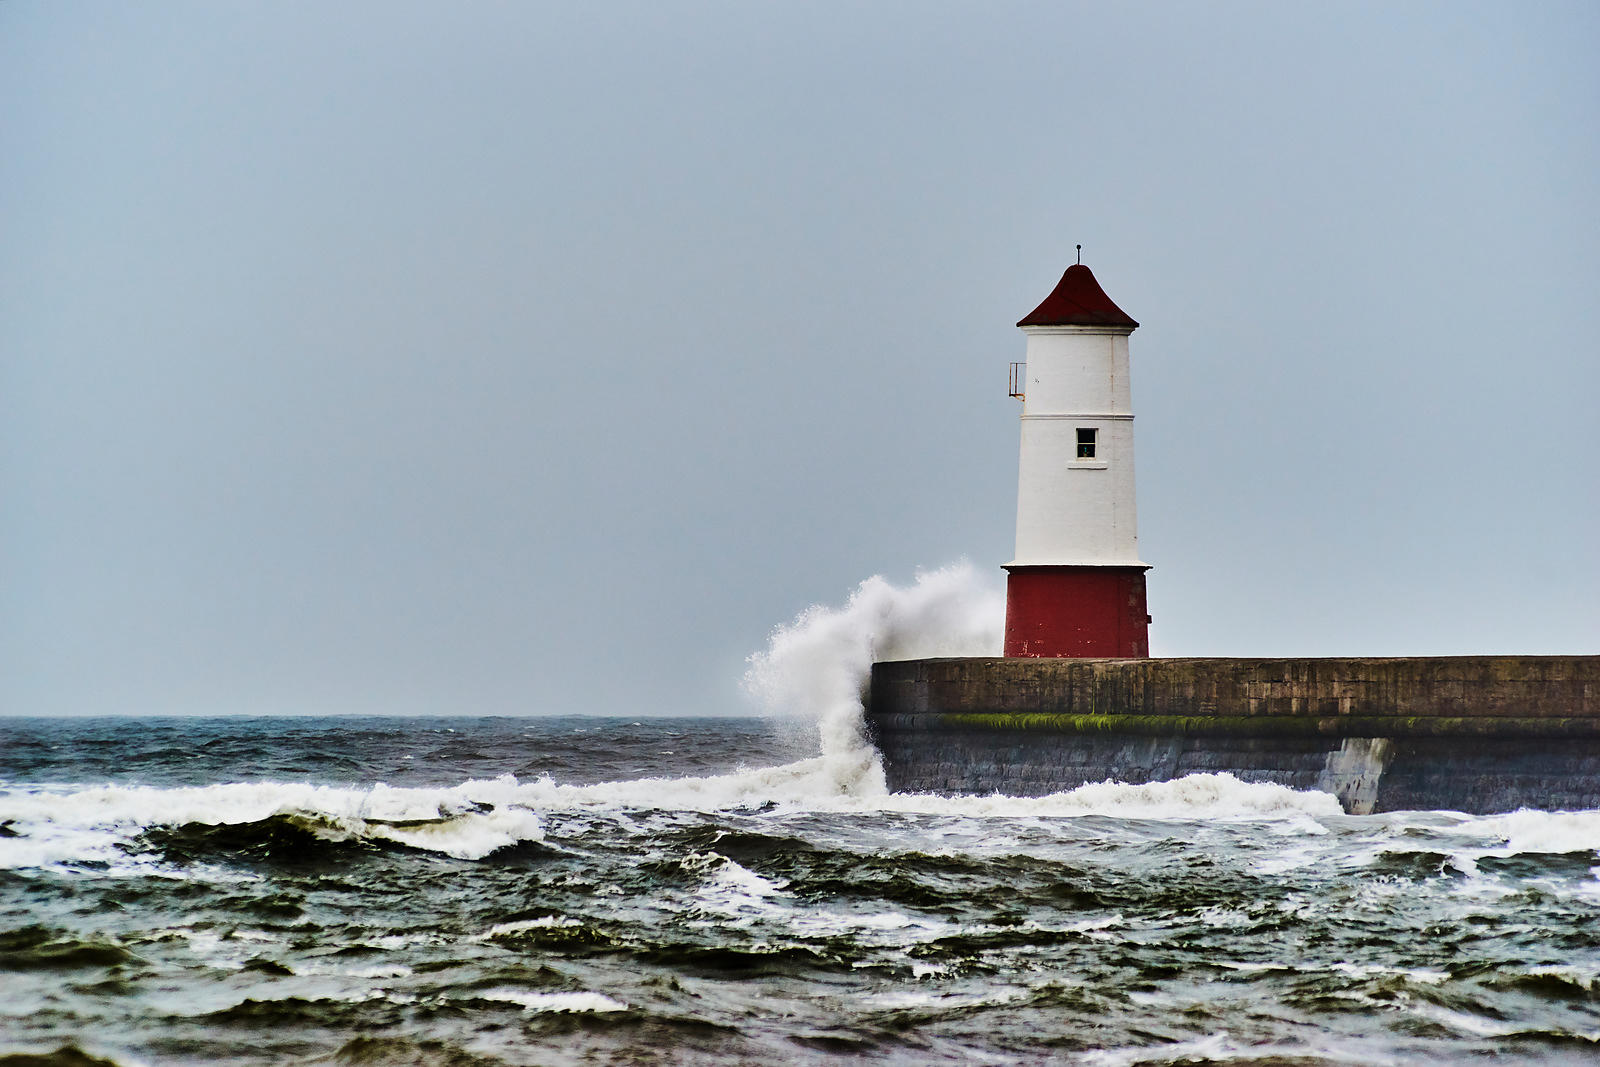 Waves breaking on a lighthouse against a clear blue sky